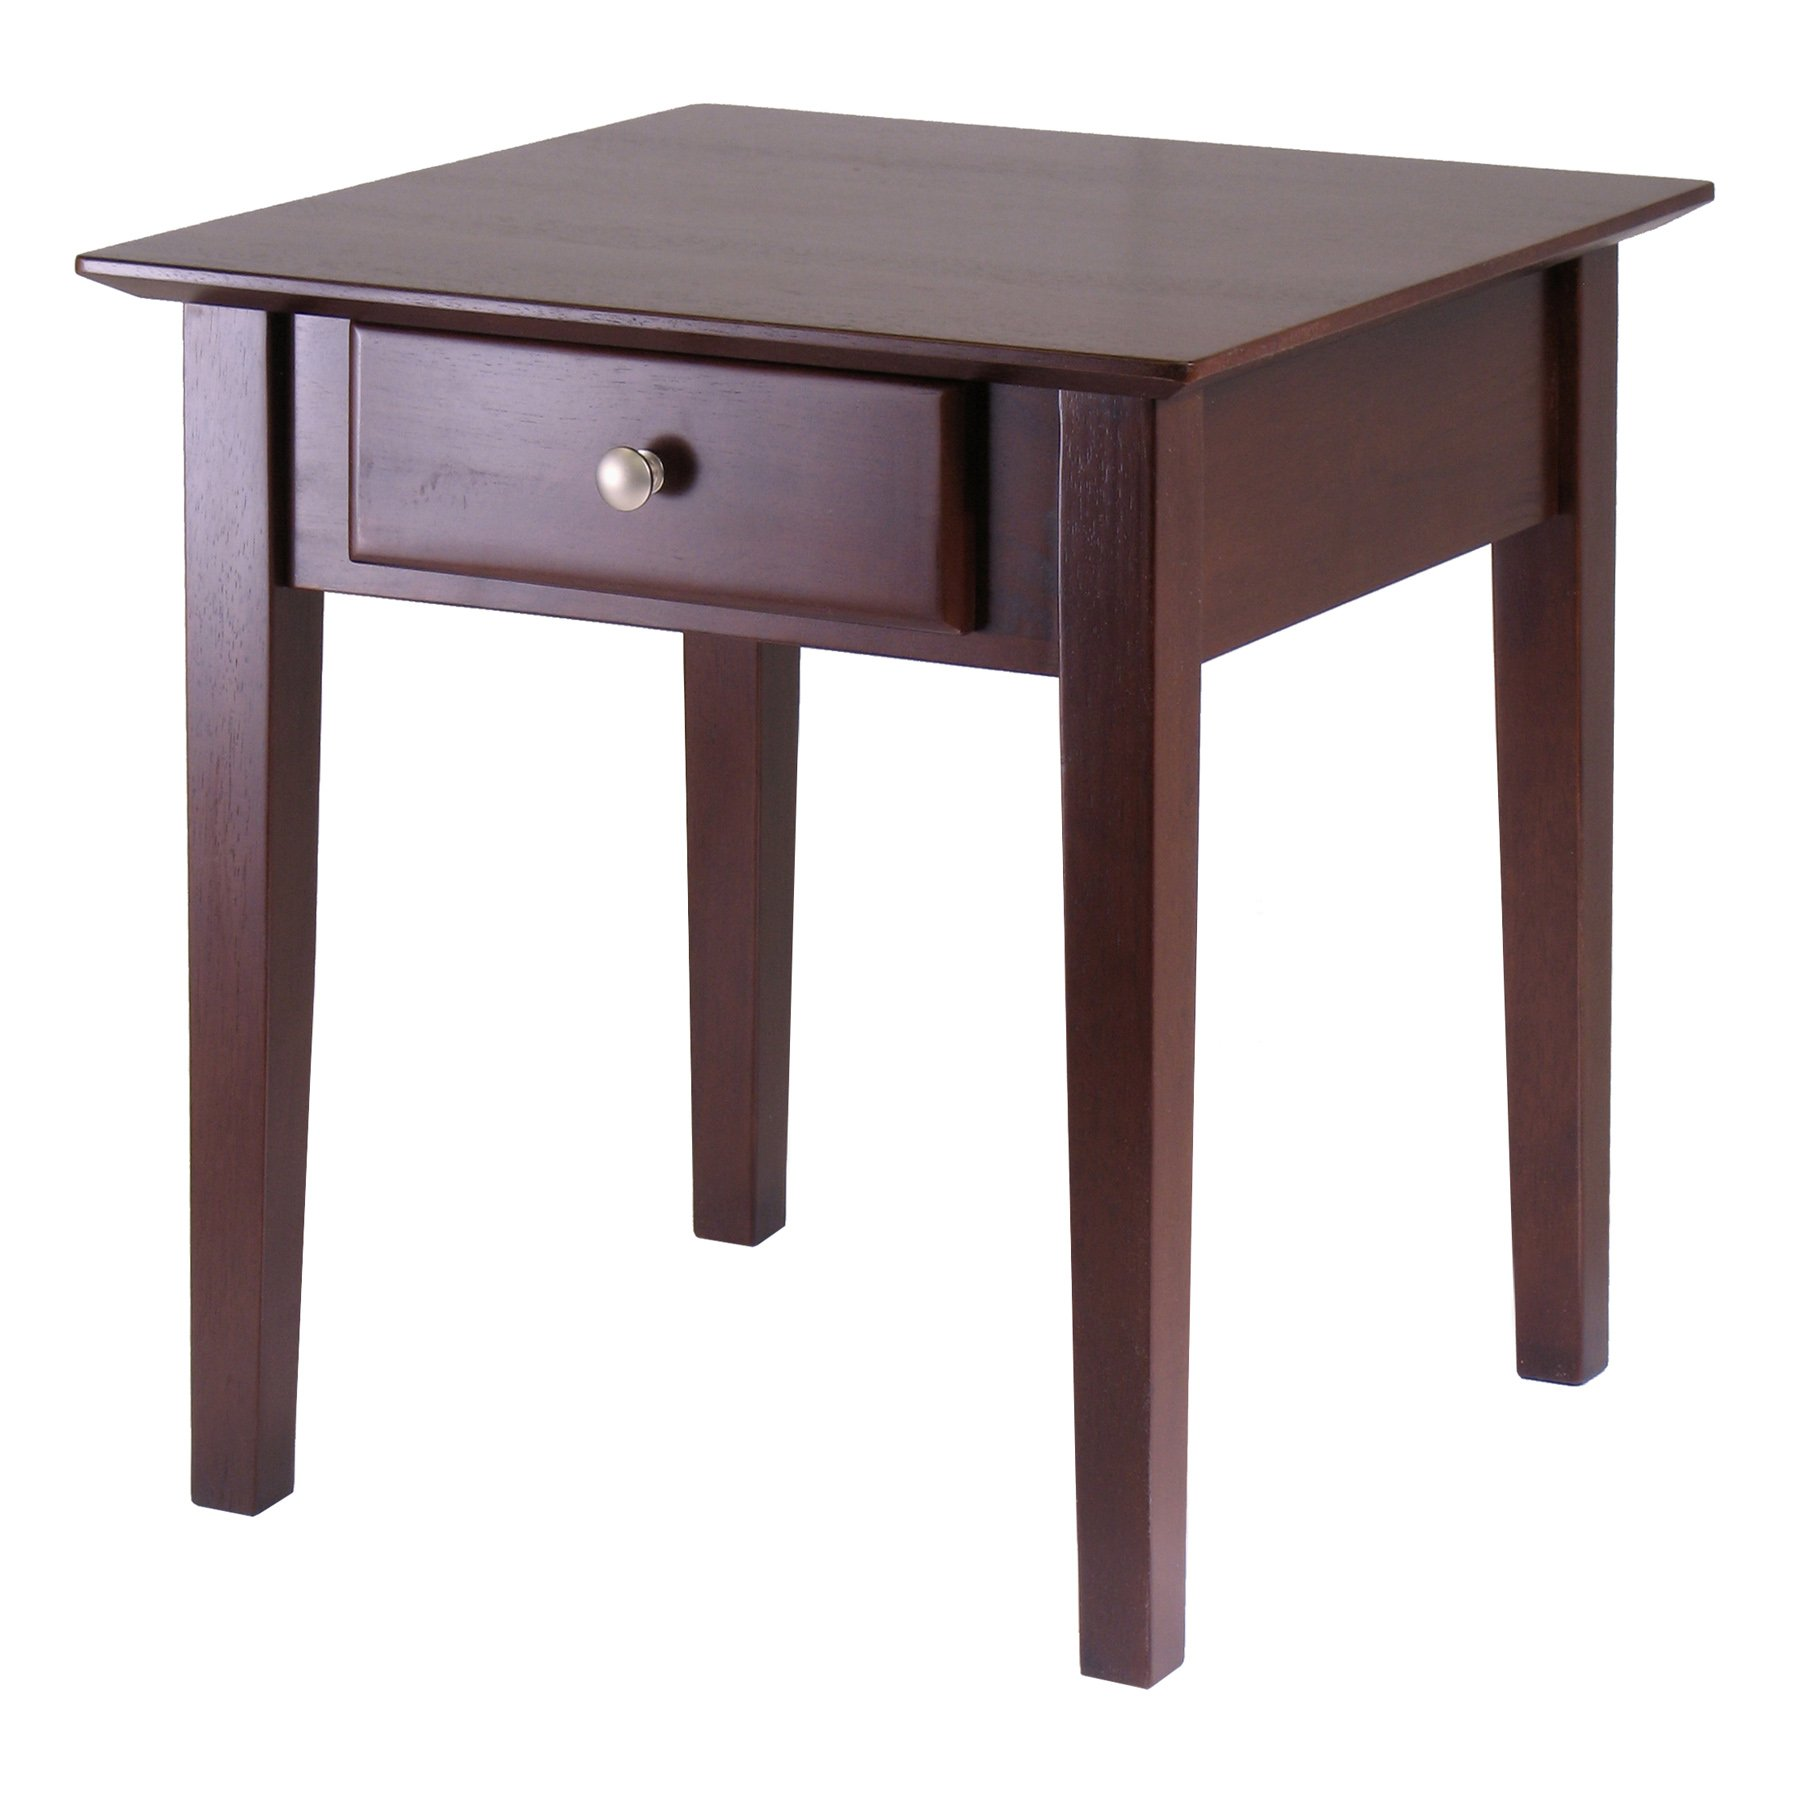 Winsome Wood Rochester End Table with one Drawer Shaker by Winsome Wood (Image #1)